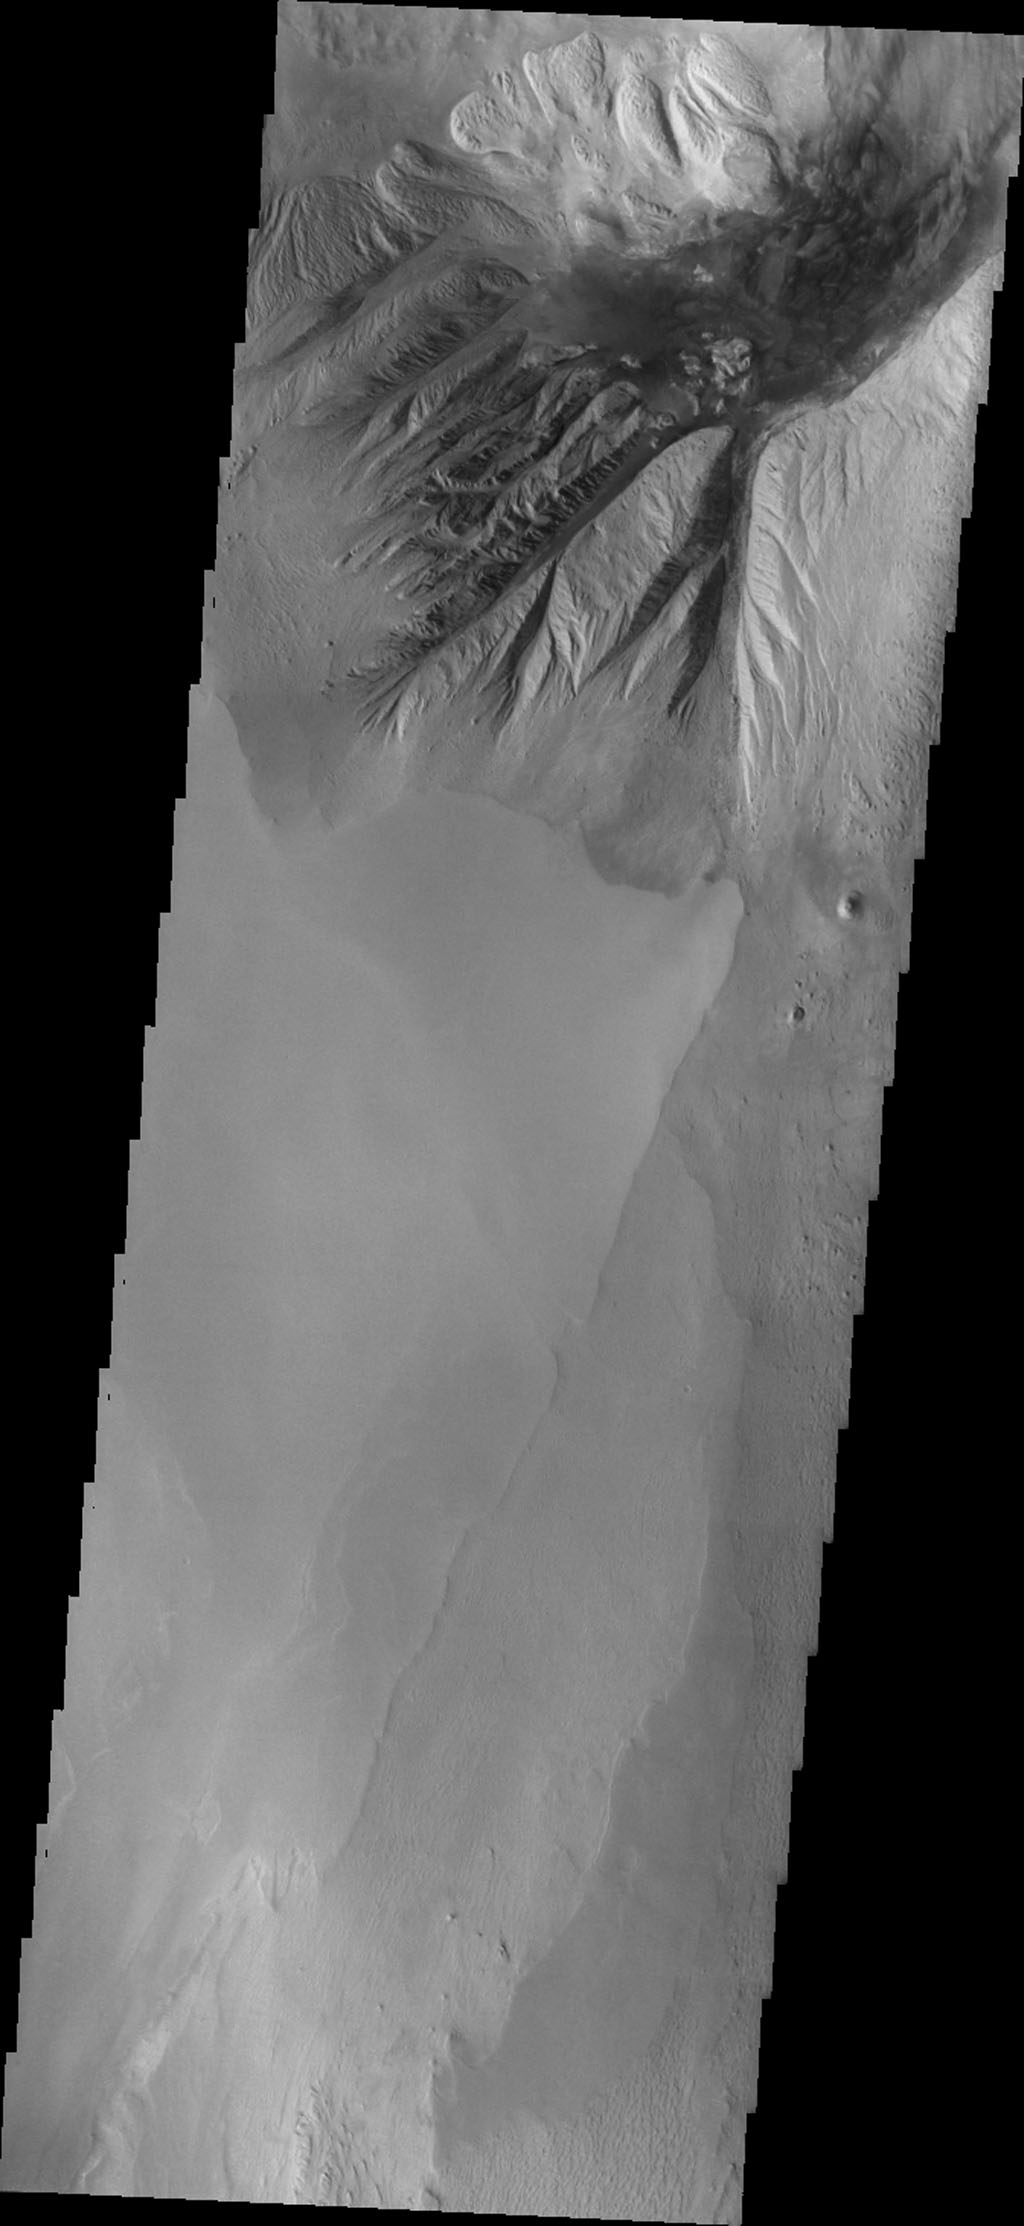 This image from NASA's 2001 Mars Odyssey spacecraft shows the northern margin of Beatis Mensa, a large mound of material in the center of Ophir Chasma.